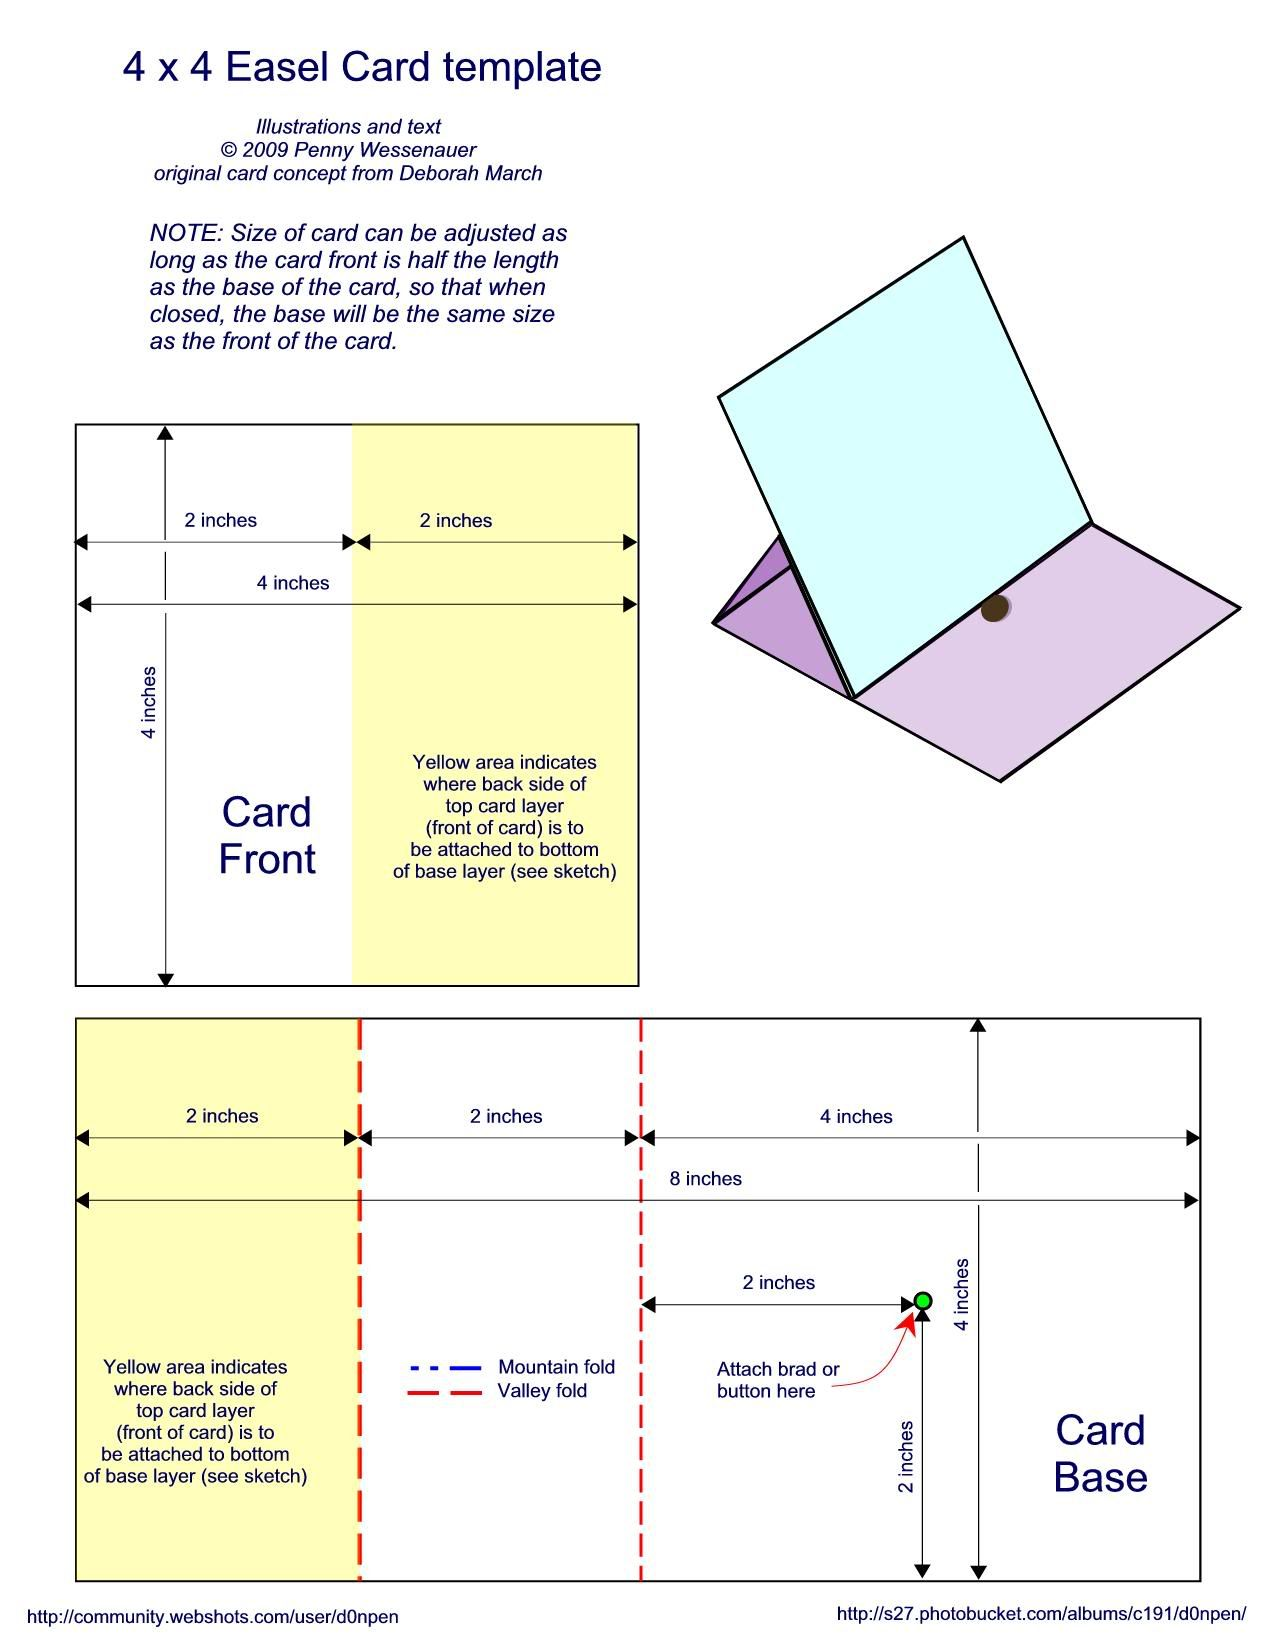 This template was designed by Carolyn Dickenson, who also made ...